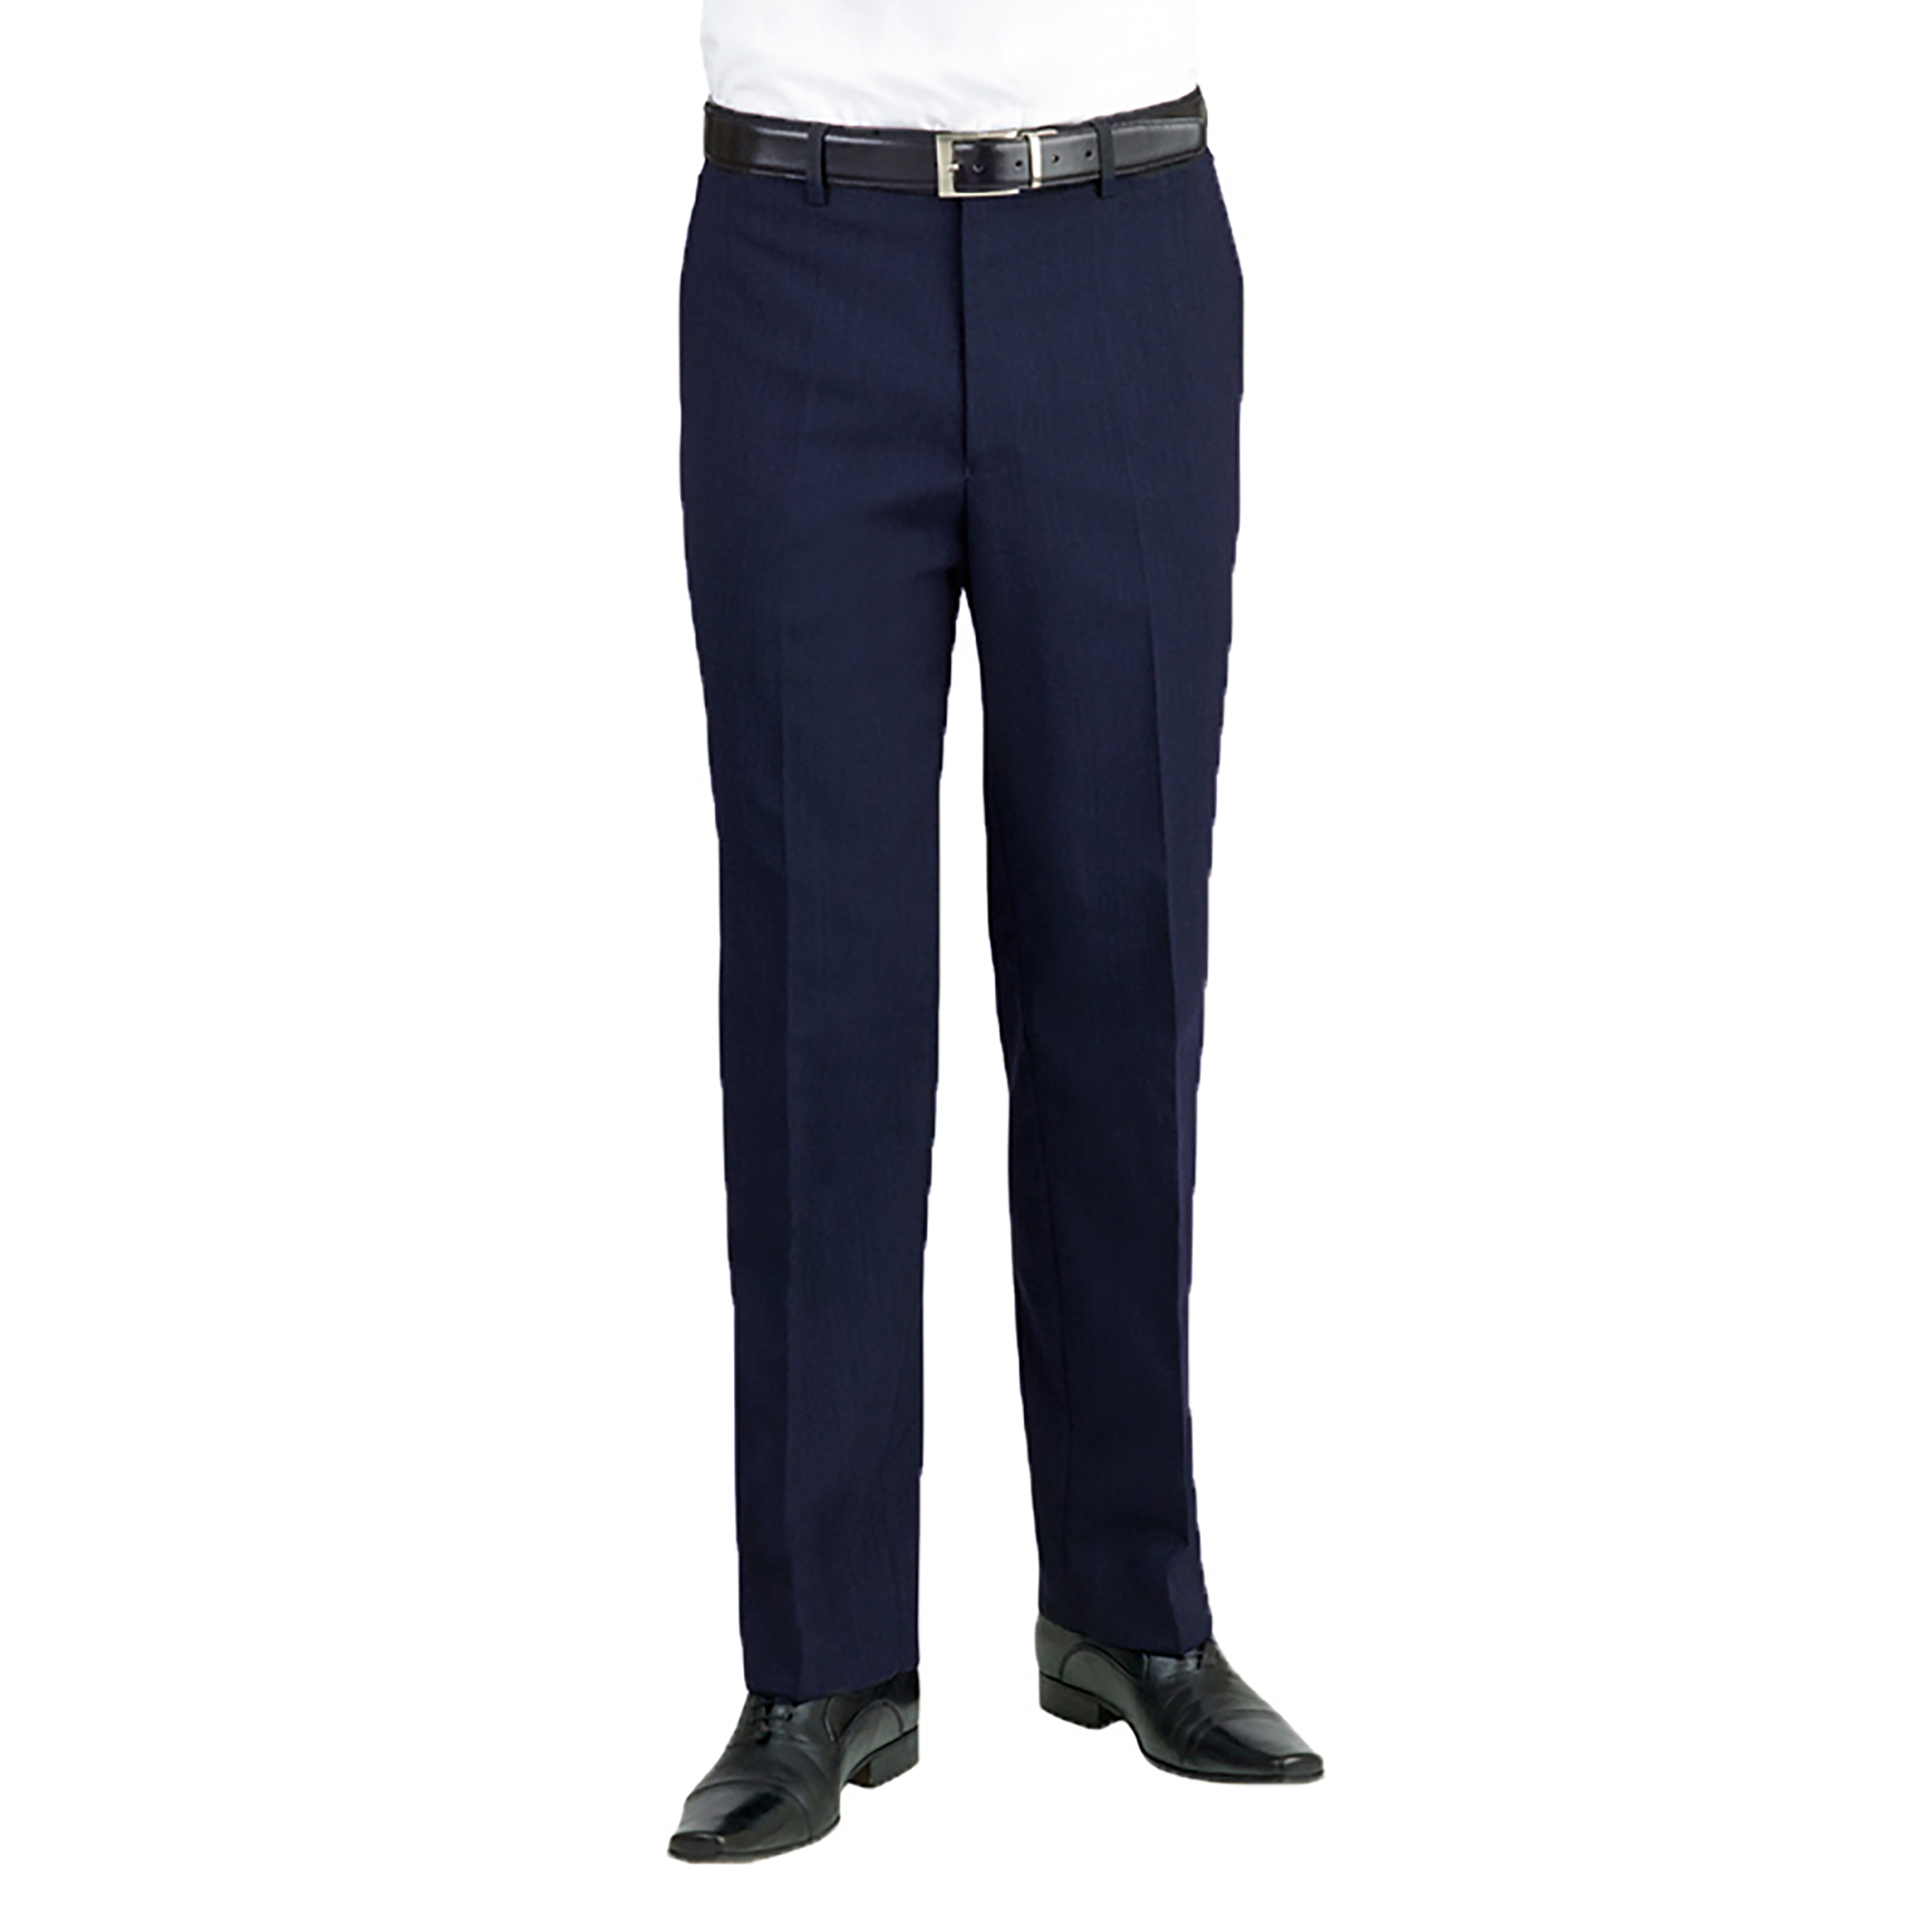 Brook Taverner Apollo Flat Front Formal Suit Trousers (32R) (Navy)